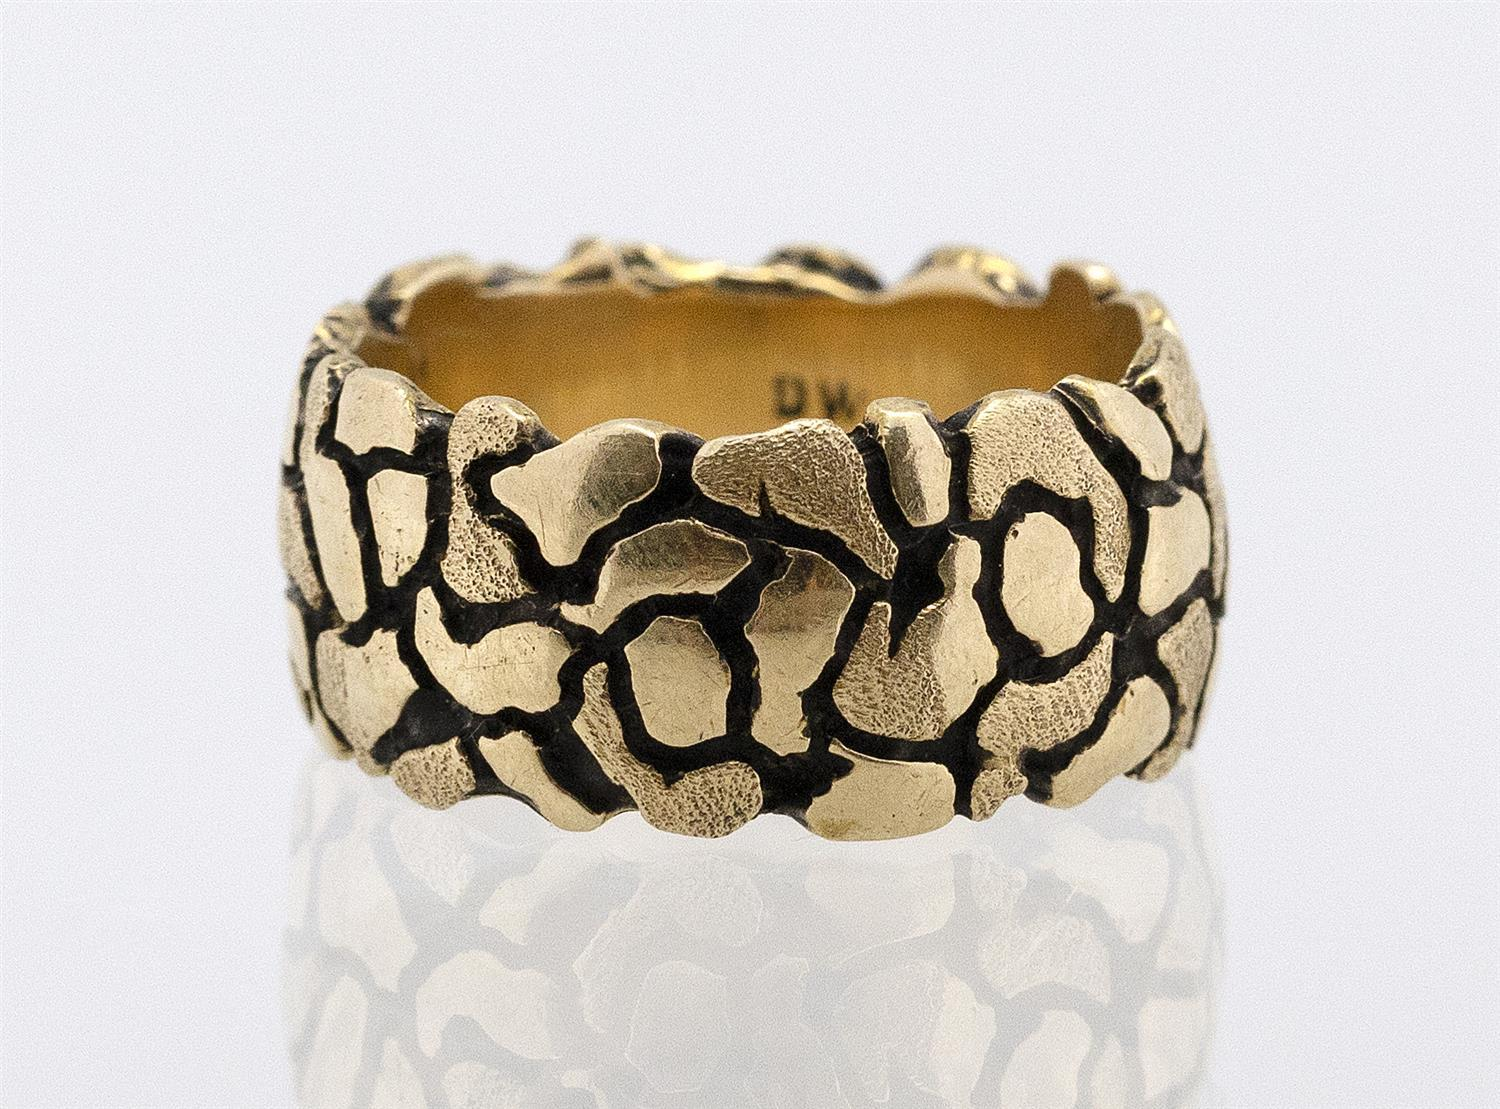 """14KT GOLD MAN'S RING Textured and oxidized surface. Maker's mark """"DW"""". Size 9½.Approx. 8.33 dwt."""